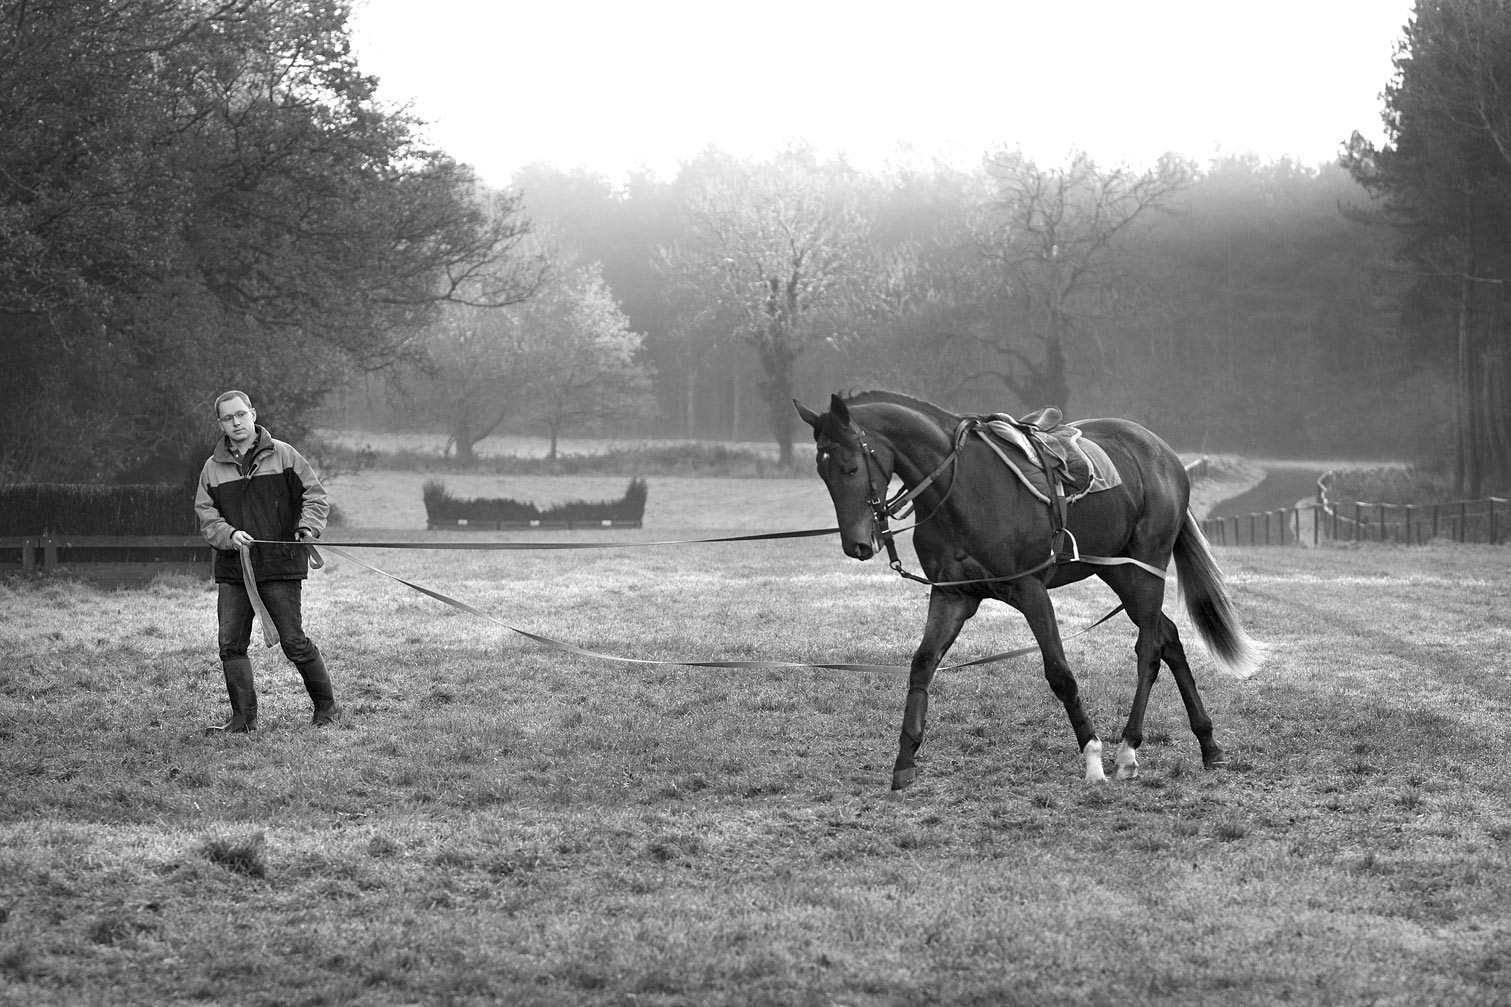 Yearling-being-lead-trained-B-W